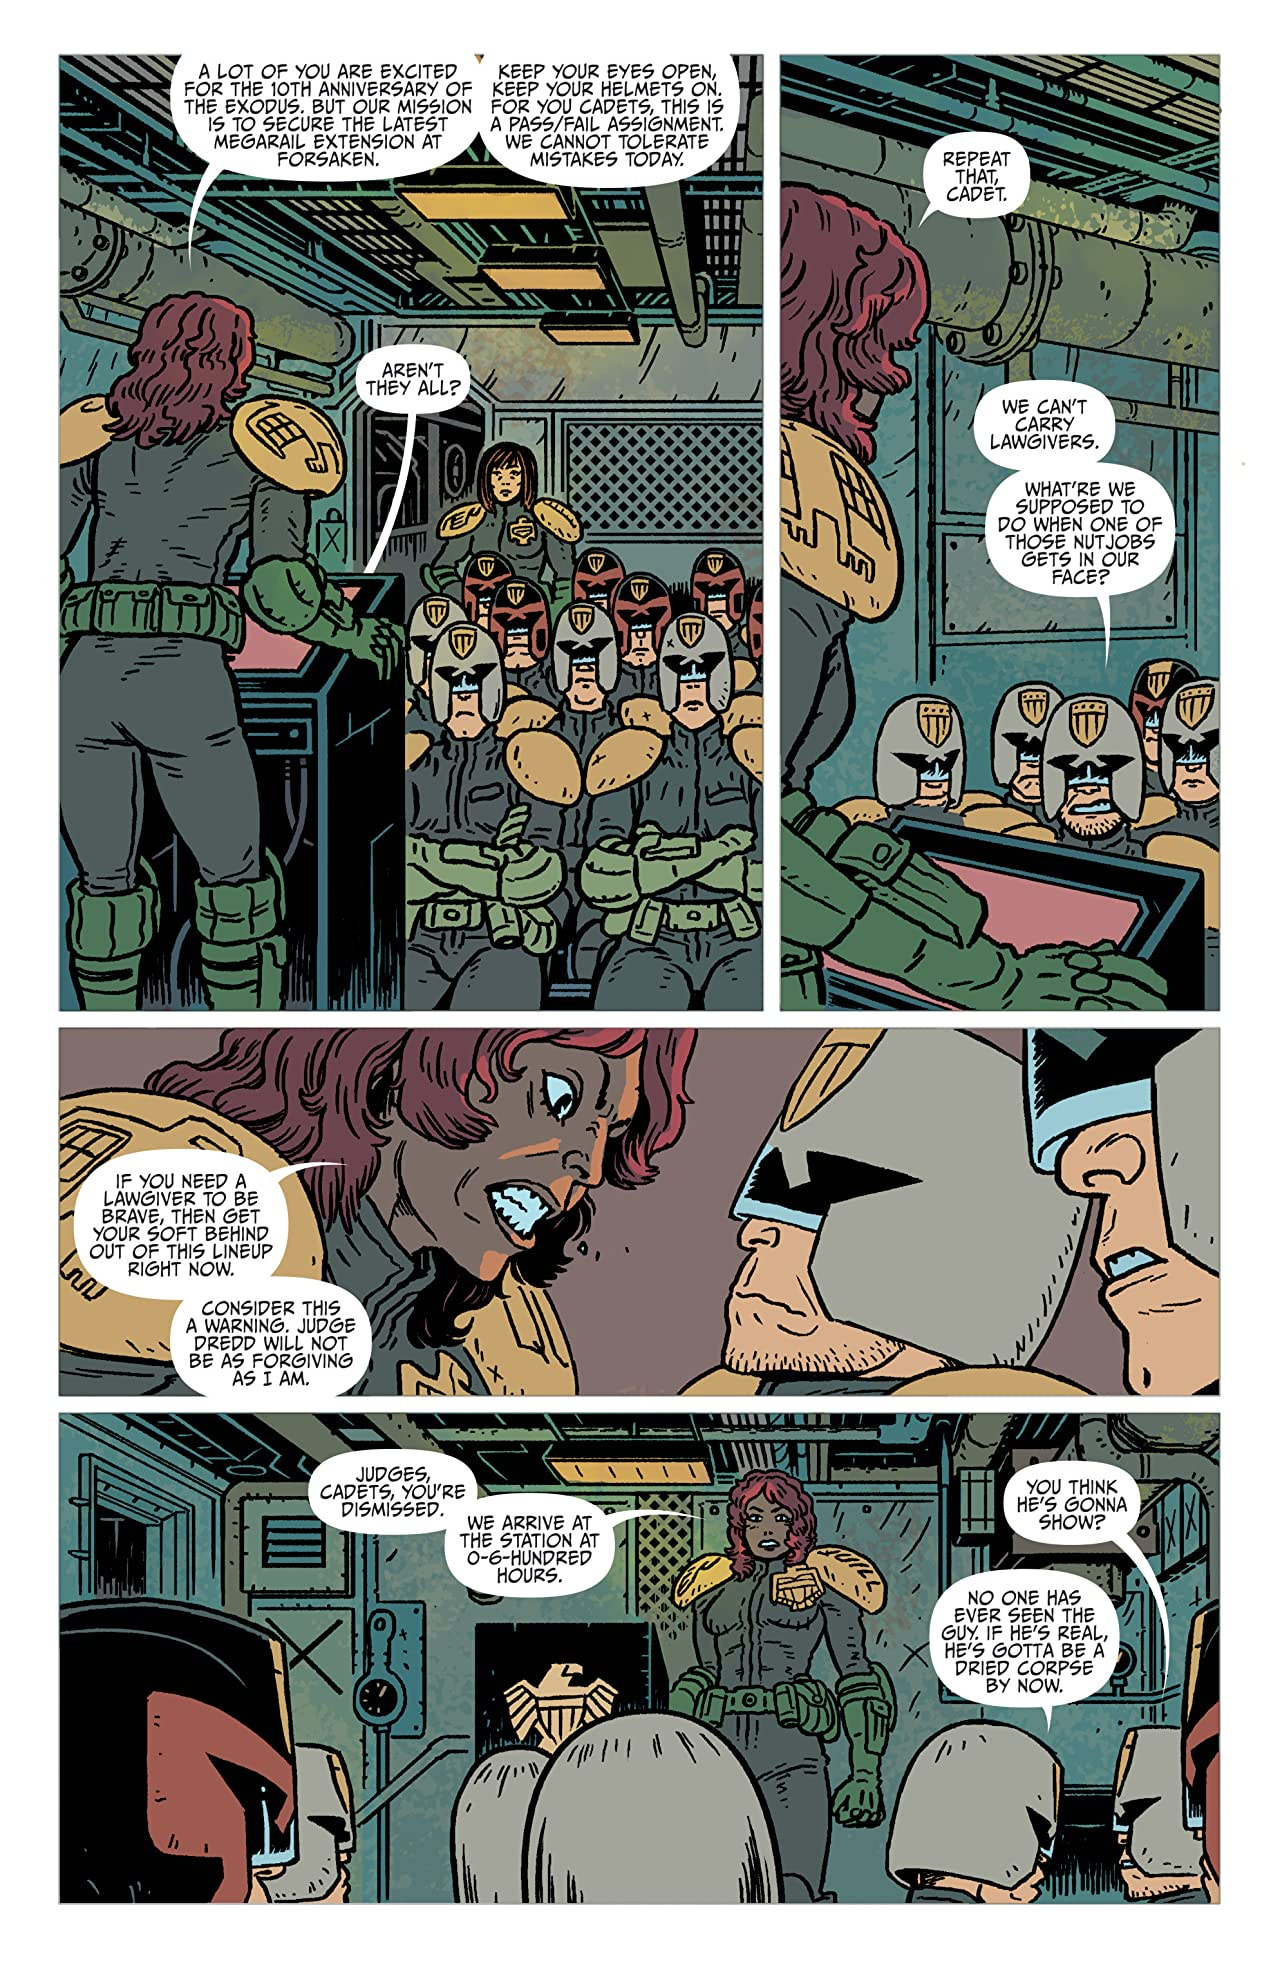 Judge Dredd: The Blessed Earth #2